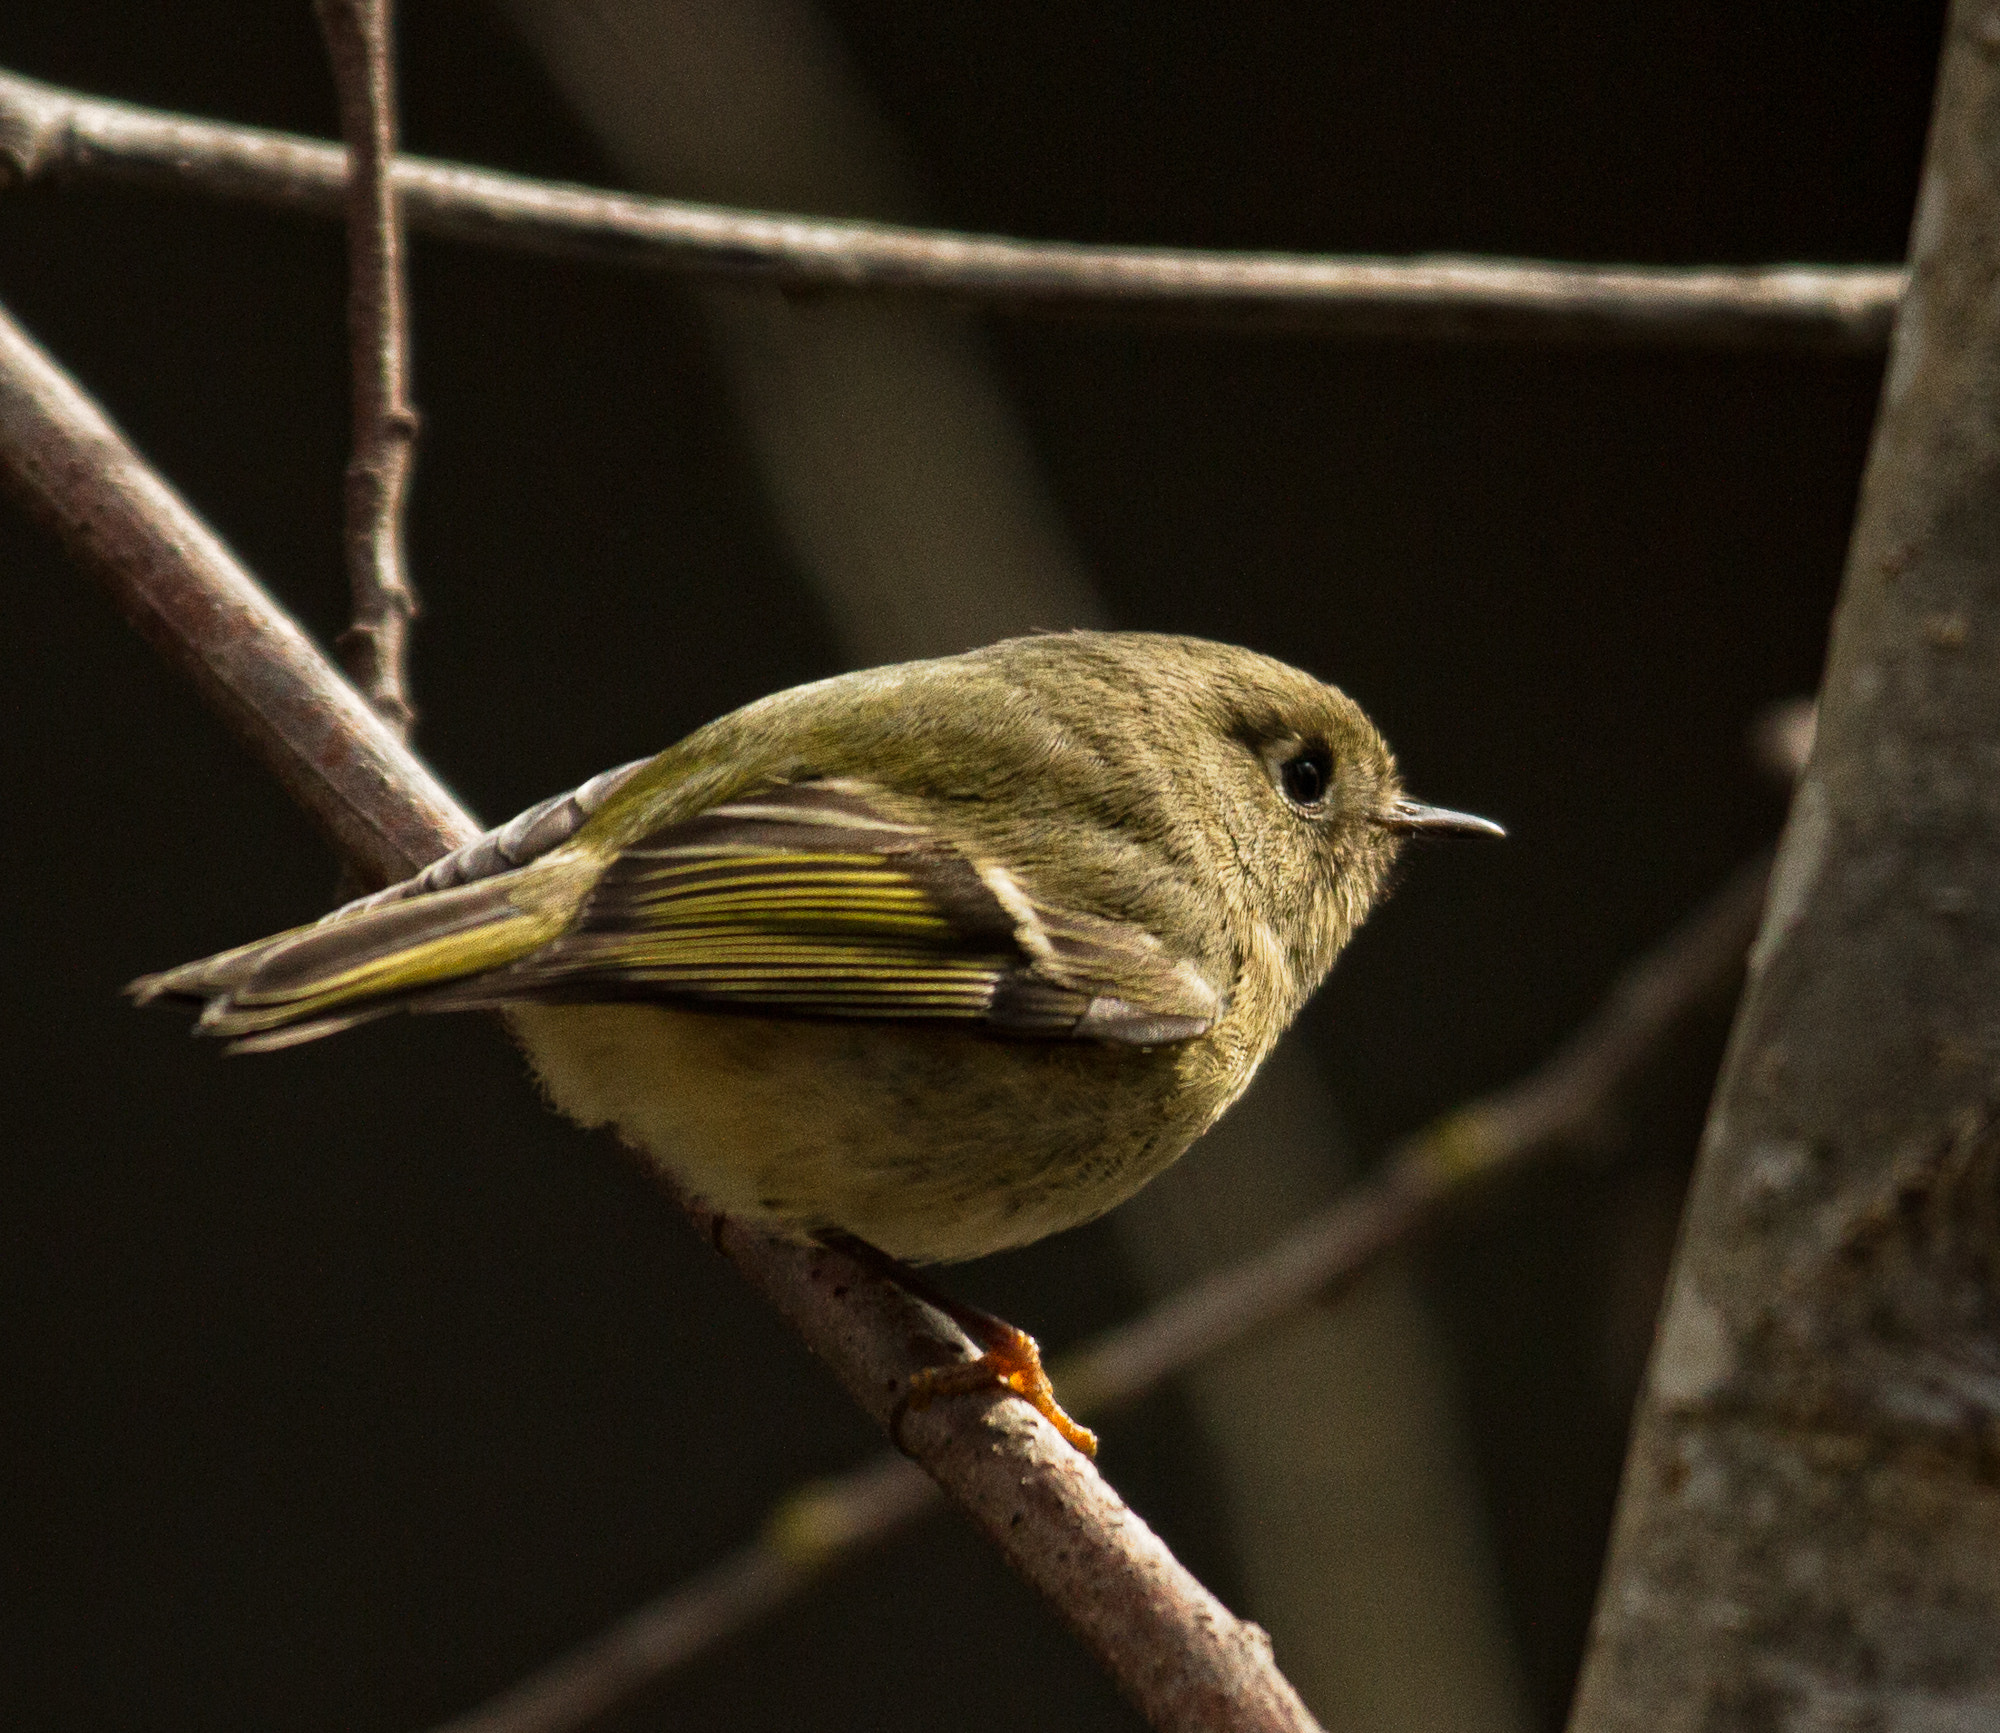 Photograph Orange-crowned warbler by Joseph Calev on 500px